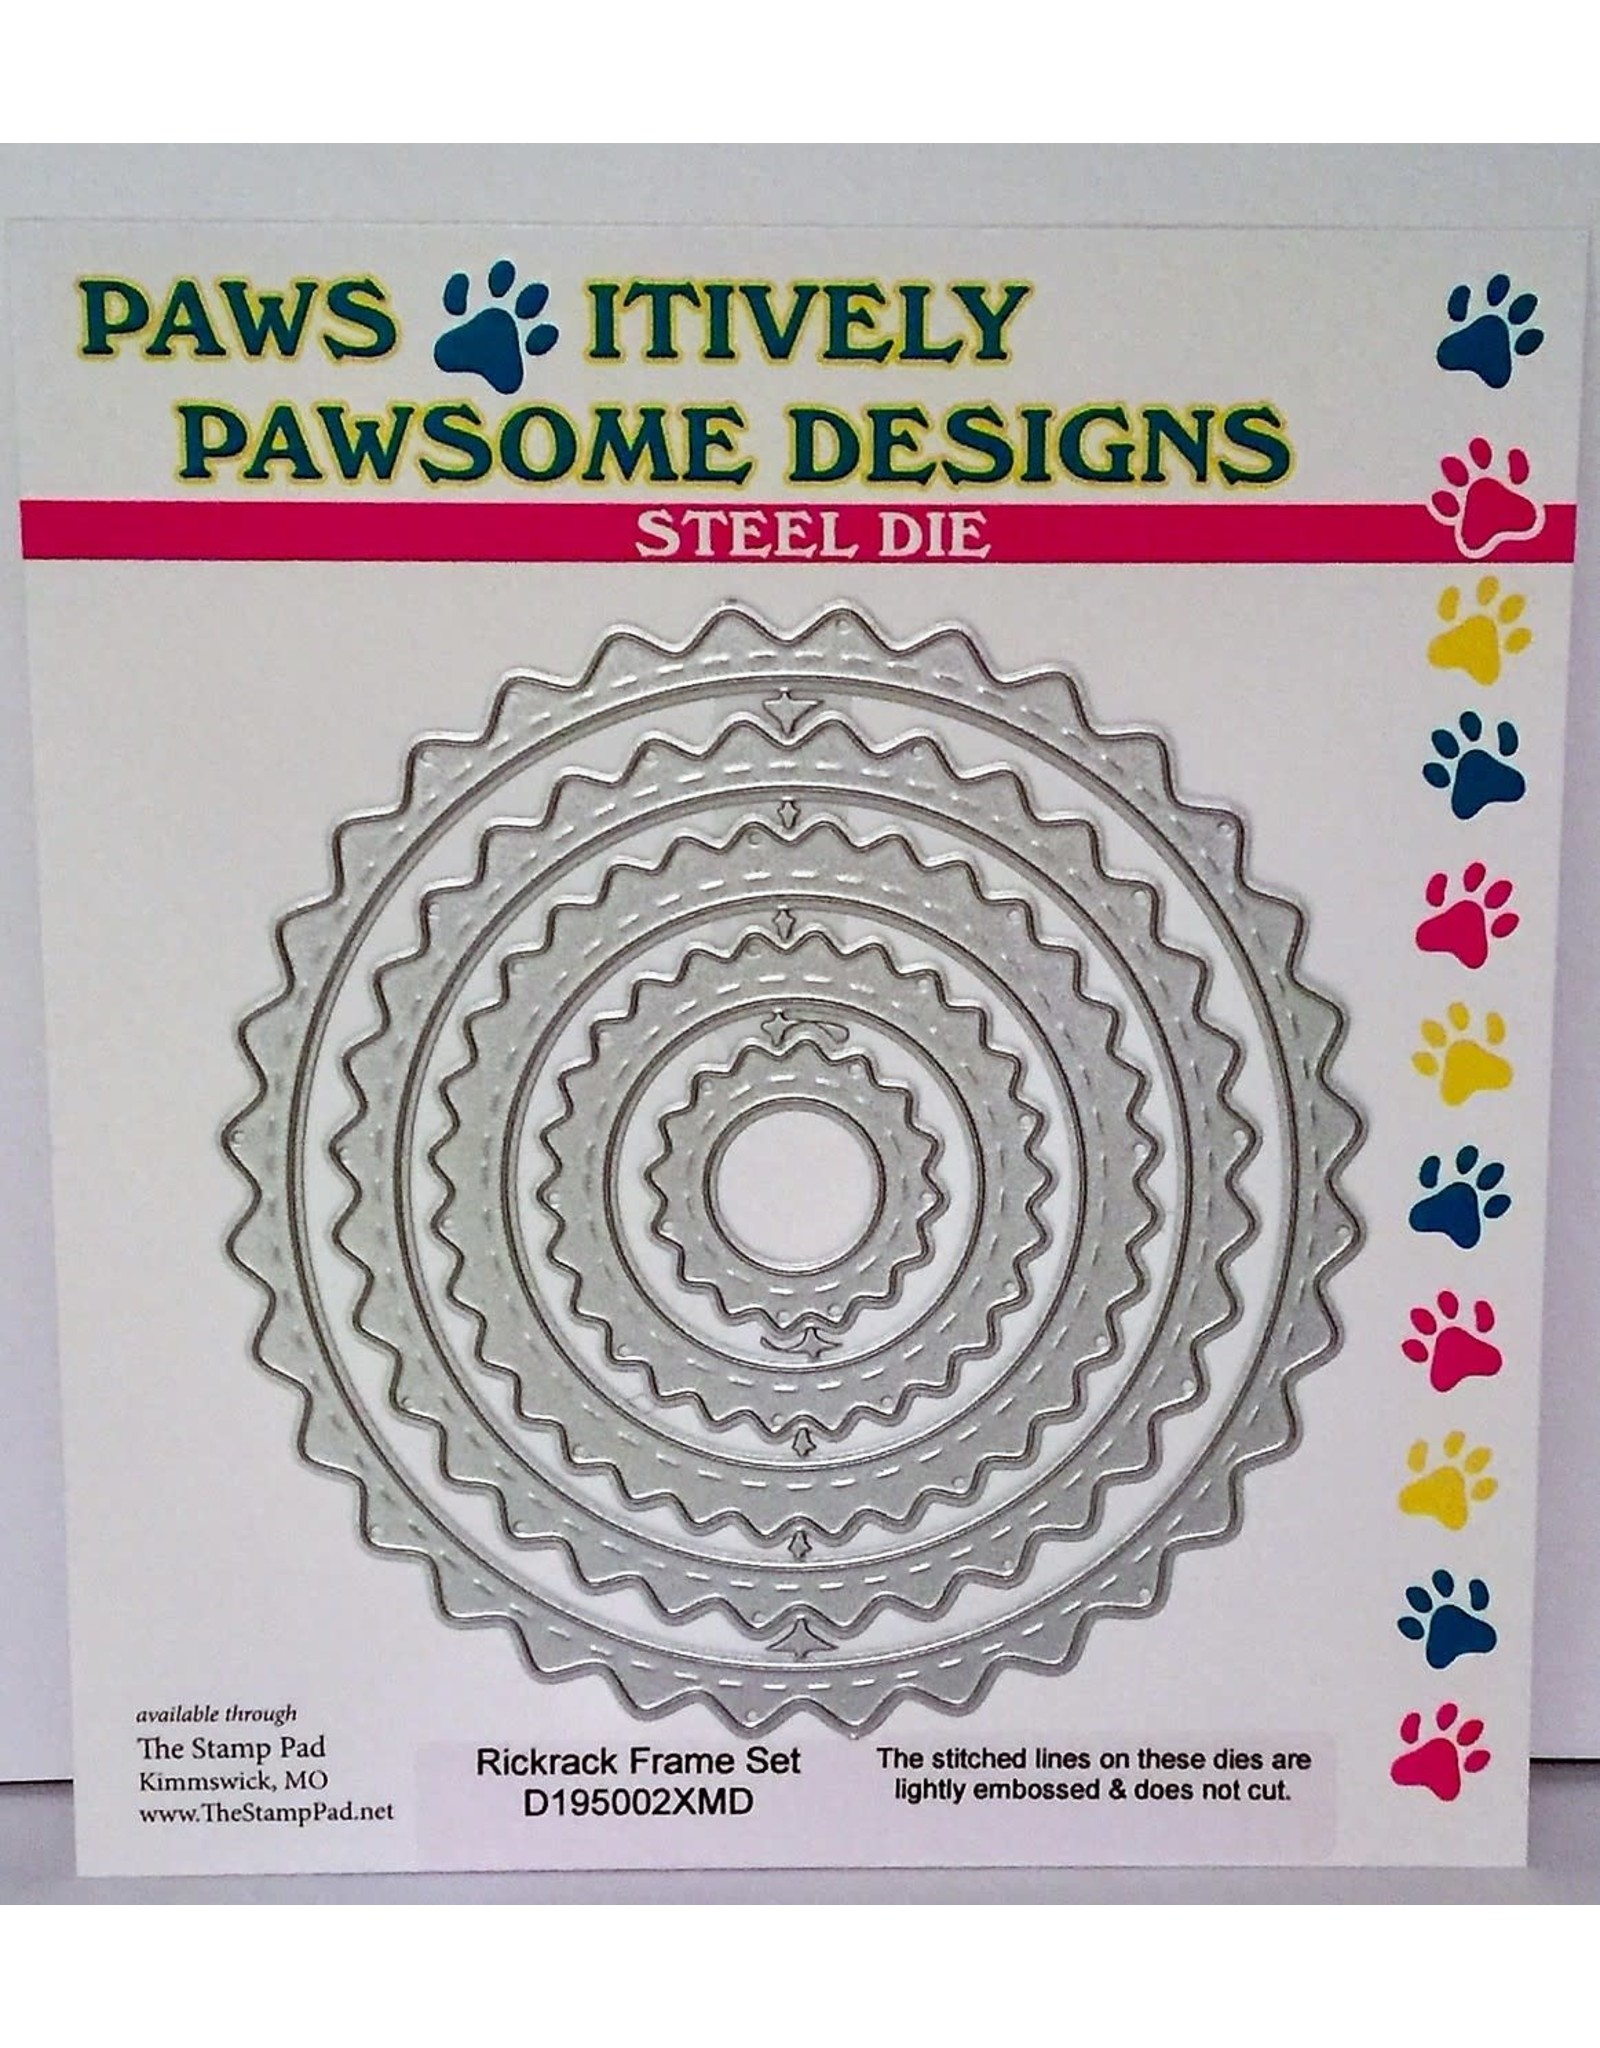 Paws-Itively Pawsome Designs Embossed Rickrack Frame Set - Die